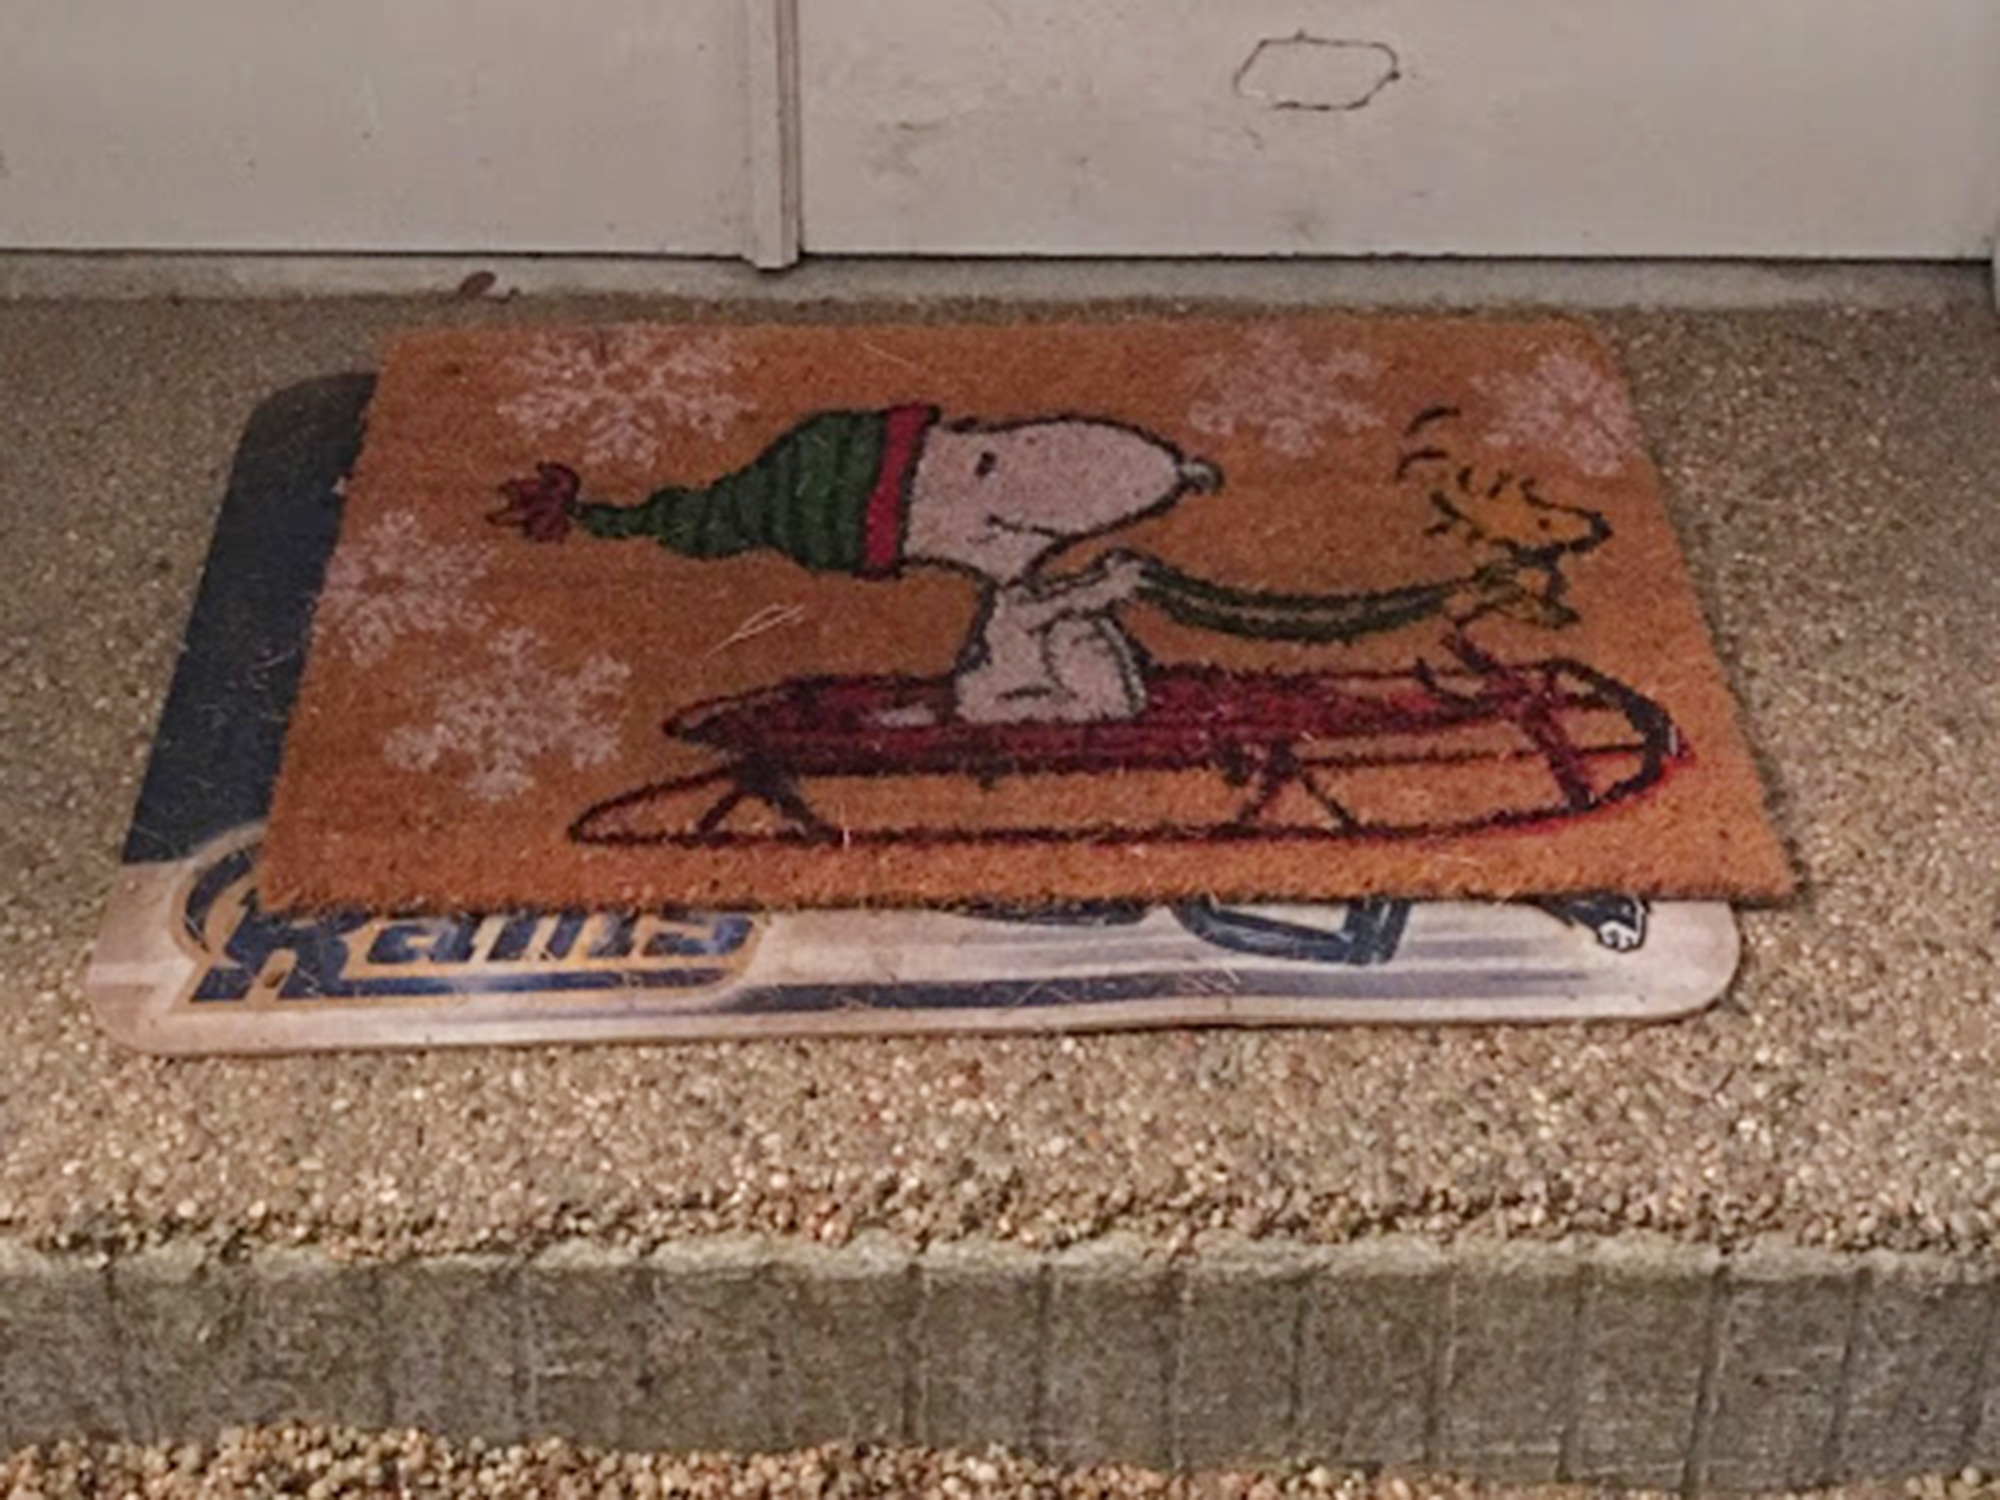 After the Rams skipped town, Bill Consoli found a new doormat.